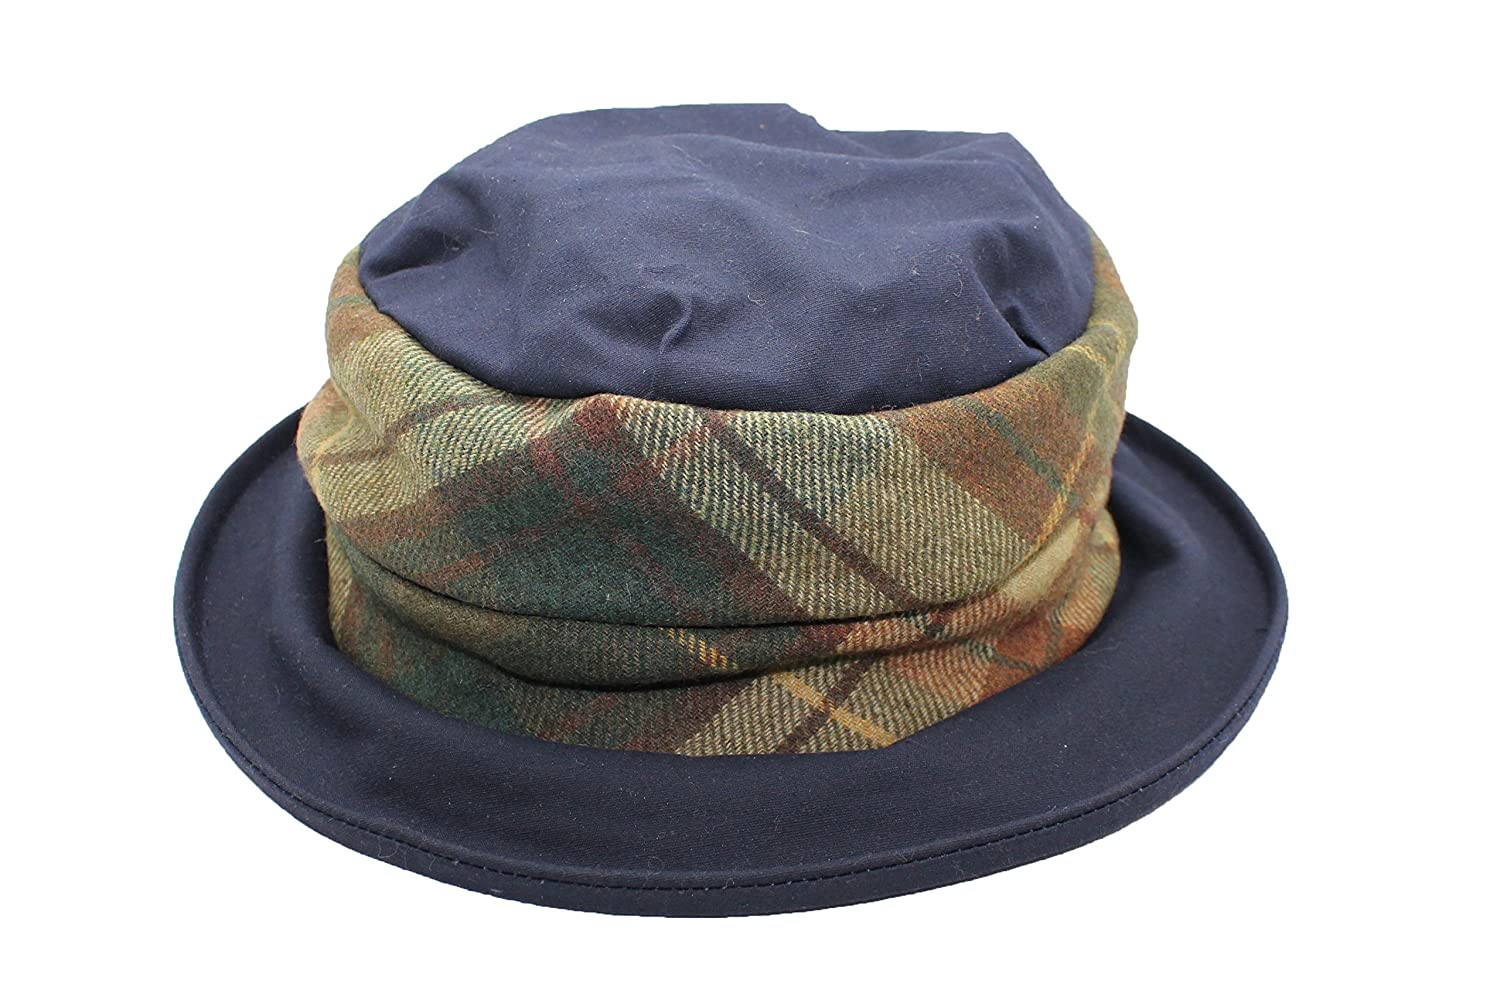 f2221563e1d Jane Anne Designs Ladies Maria Navy Blue Waxed Cotton Waterproof Winter Wax  Cloche Hat with Tweed Band  Amazon.co.uk  Clothing